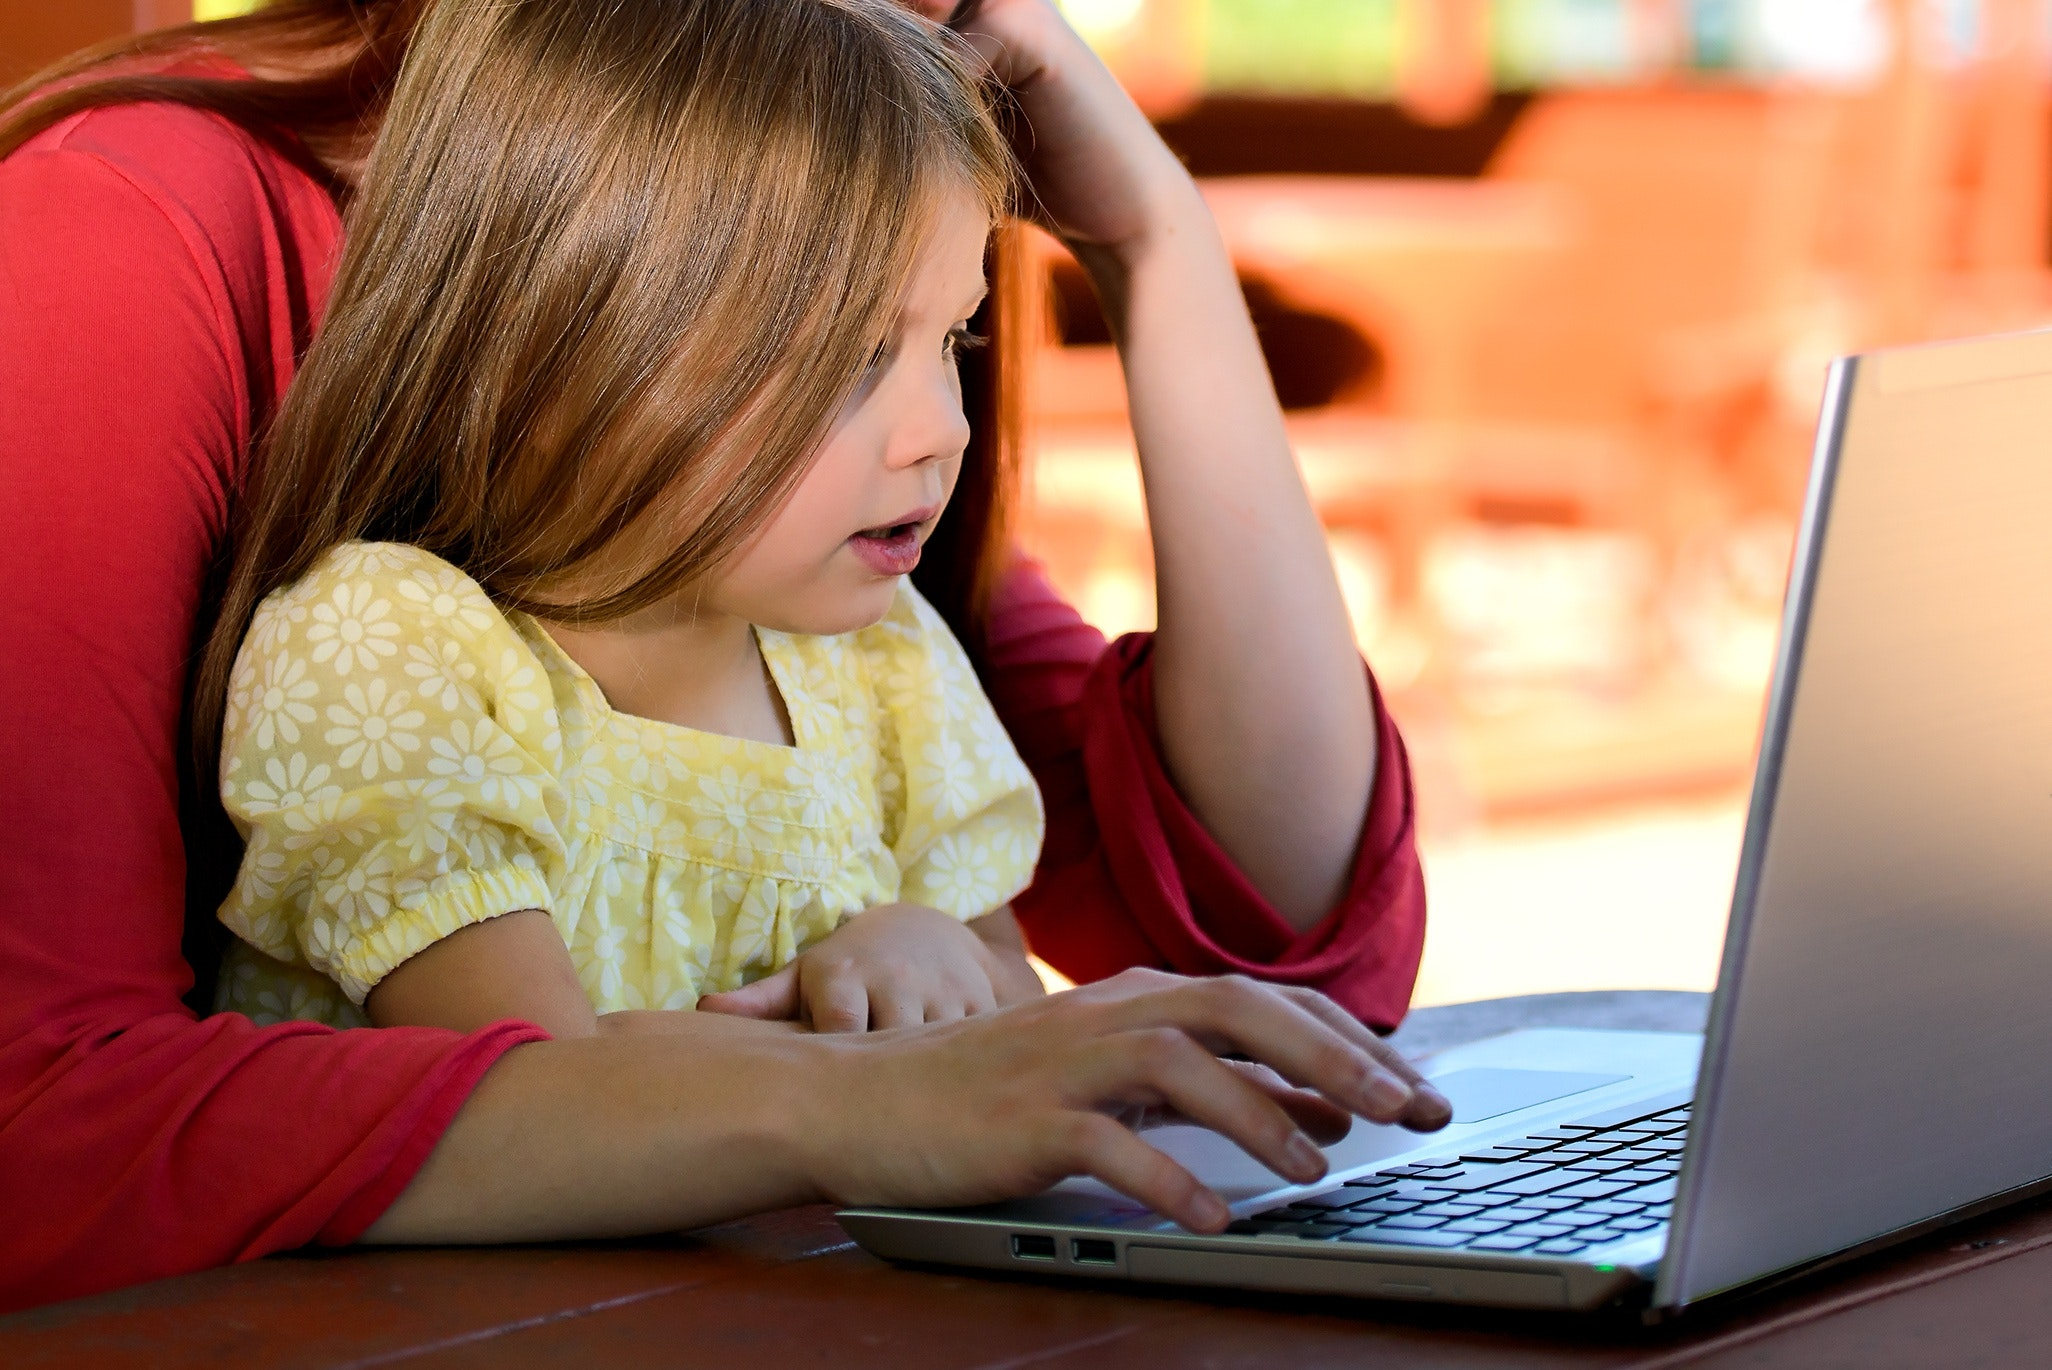 children can learn about computers at technology camp